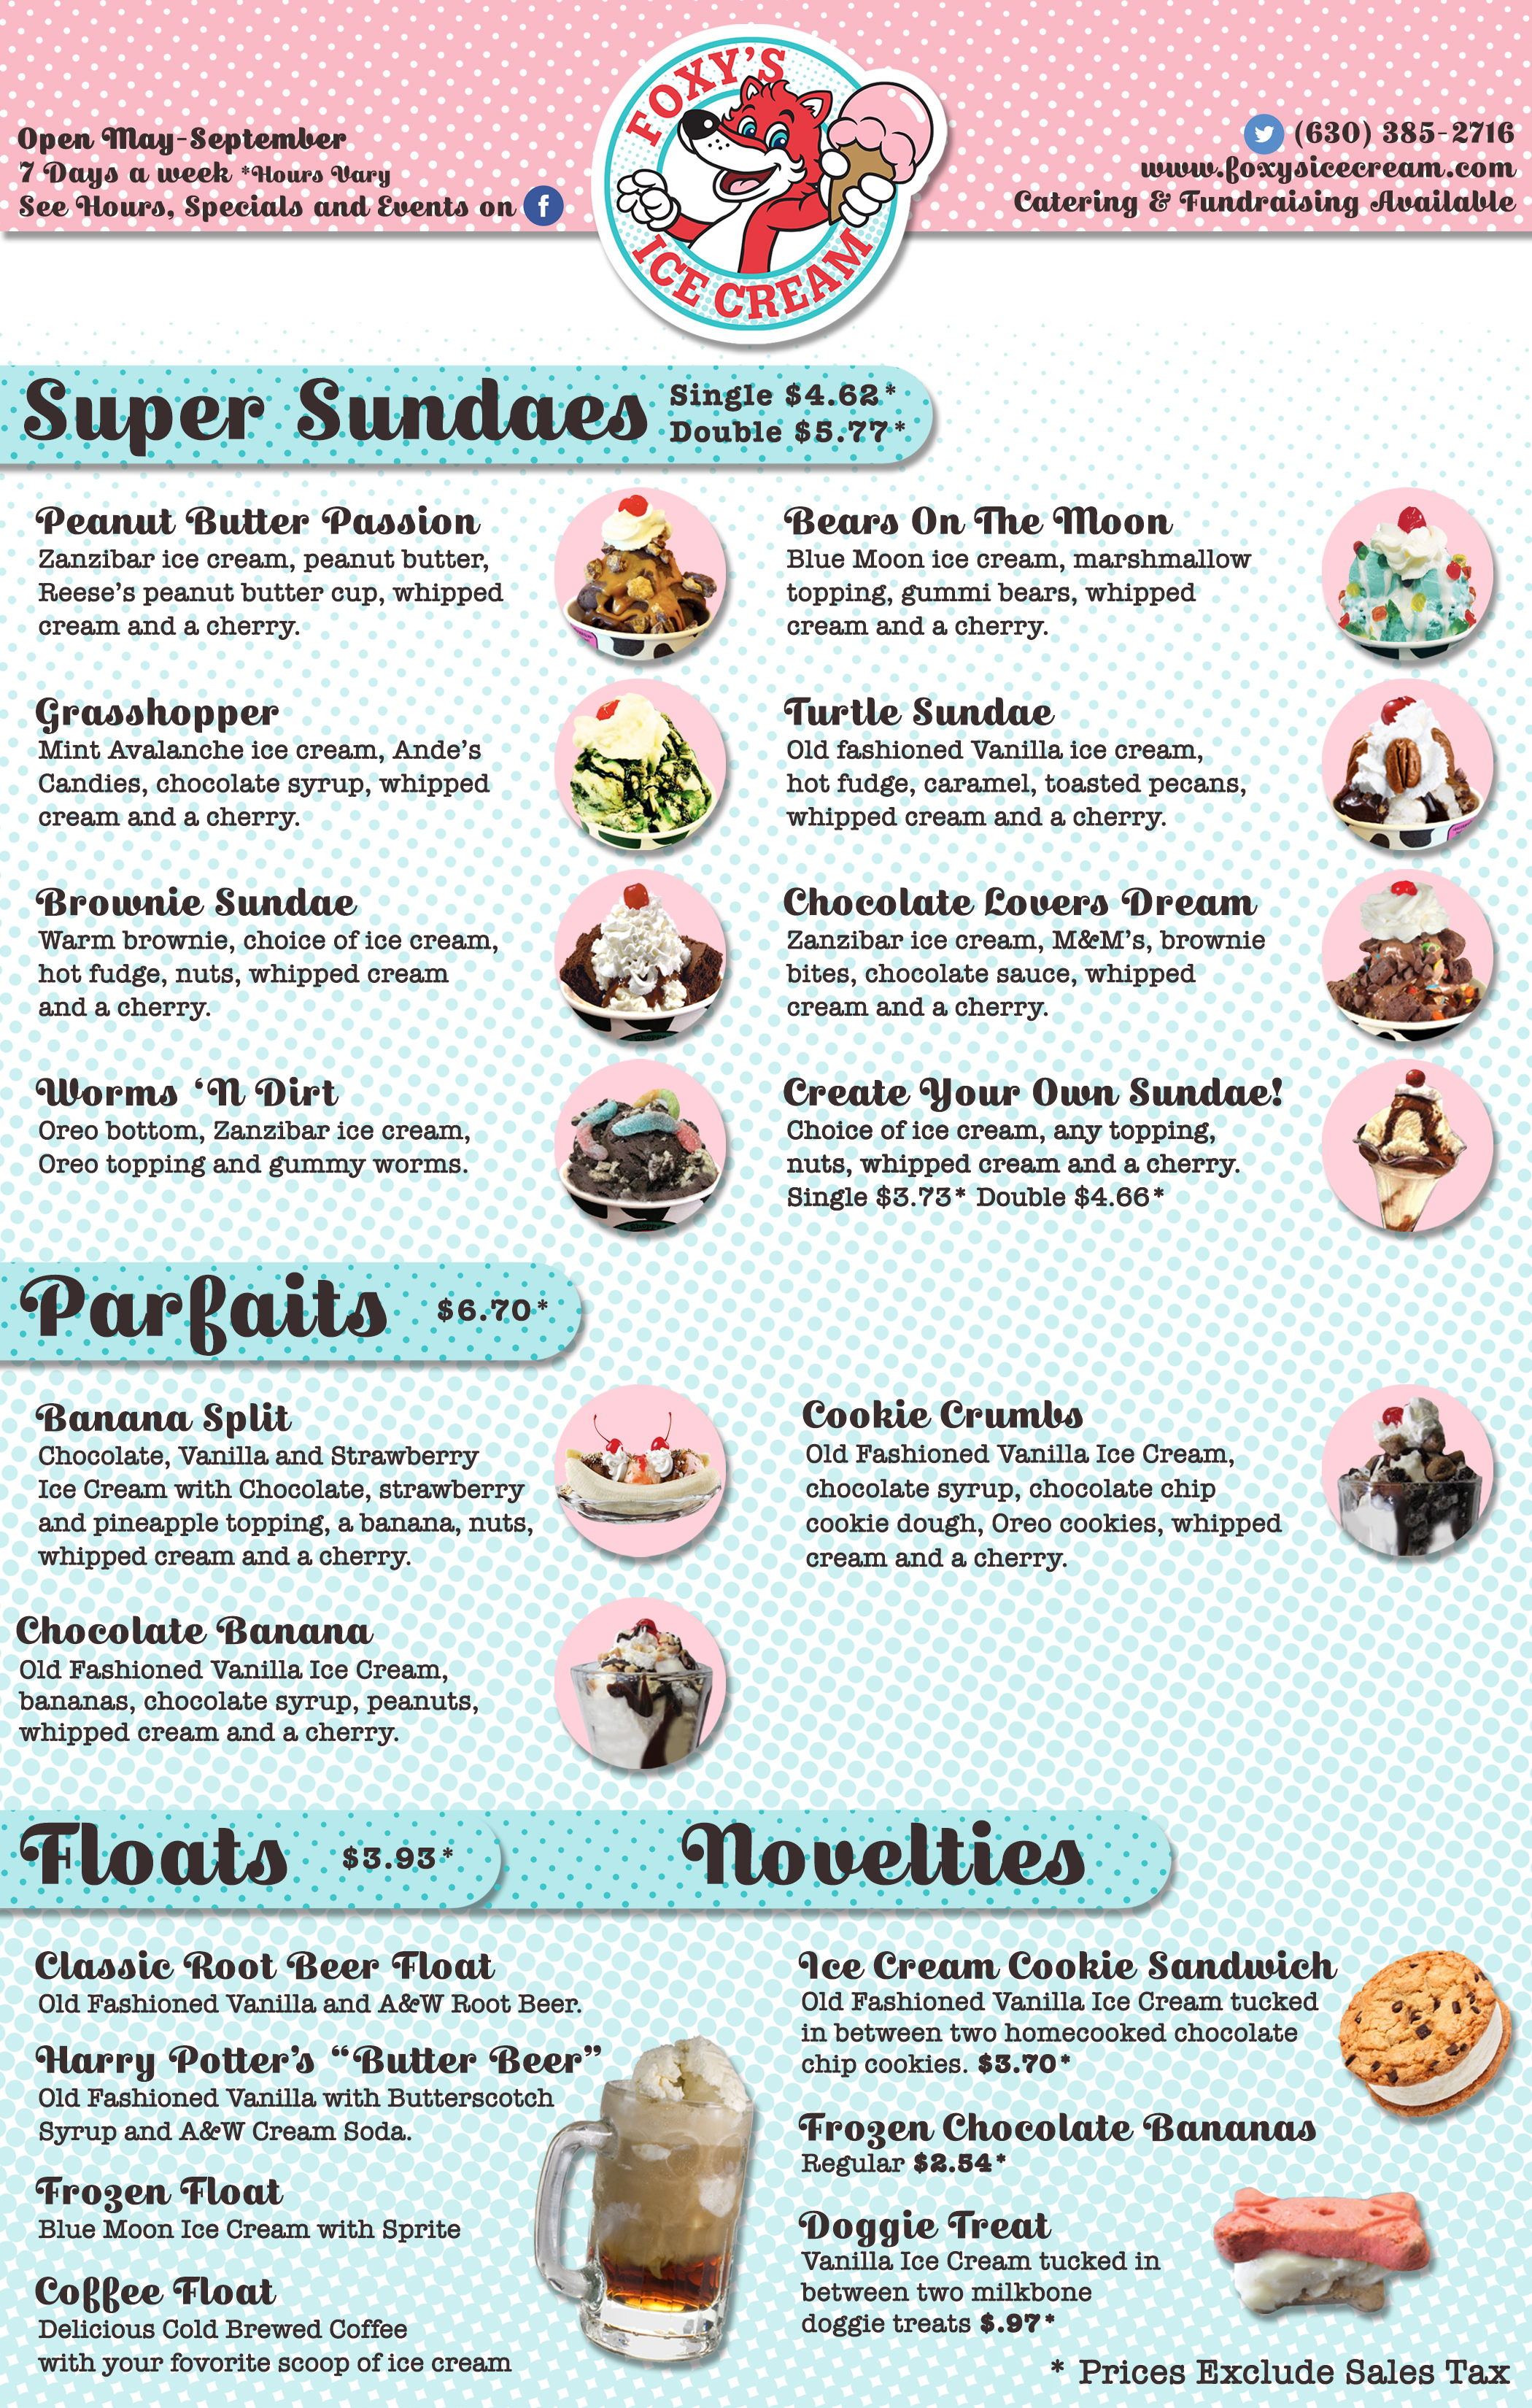 2018 foxy Final Icecream menu 4_28_18 (1